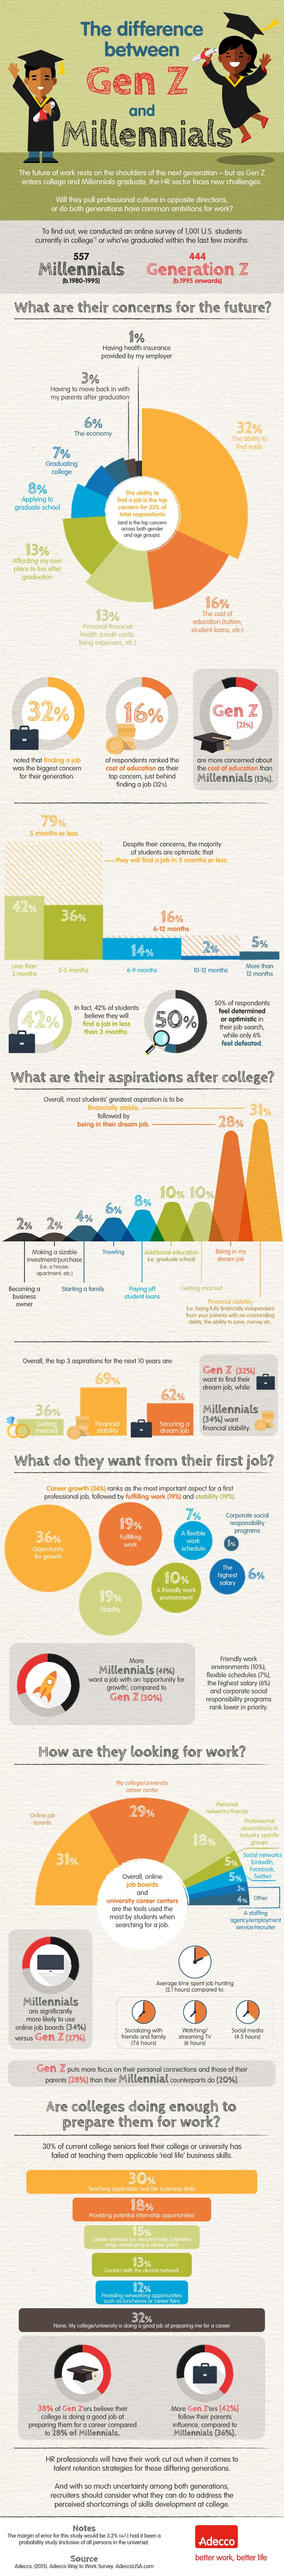 Interested in learning what motivates millennials in the workplace vs Gen Z employees? Check out the infographic showing statistics and survey results.